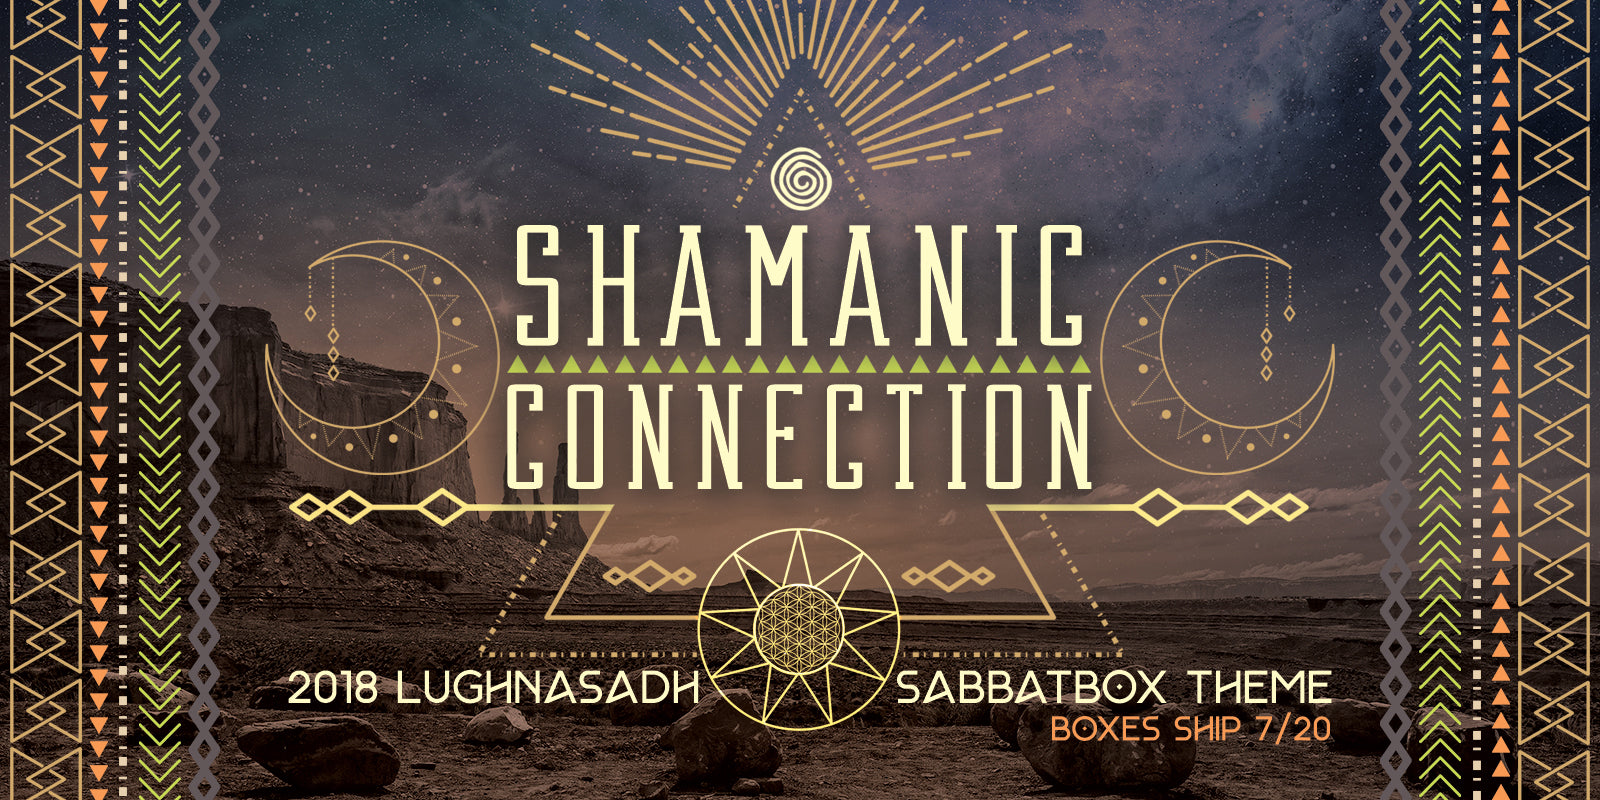 2018 Lammas Lughnasadh Sabbat Box - Shamanic Connection